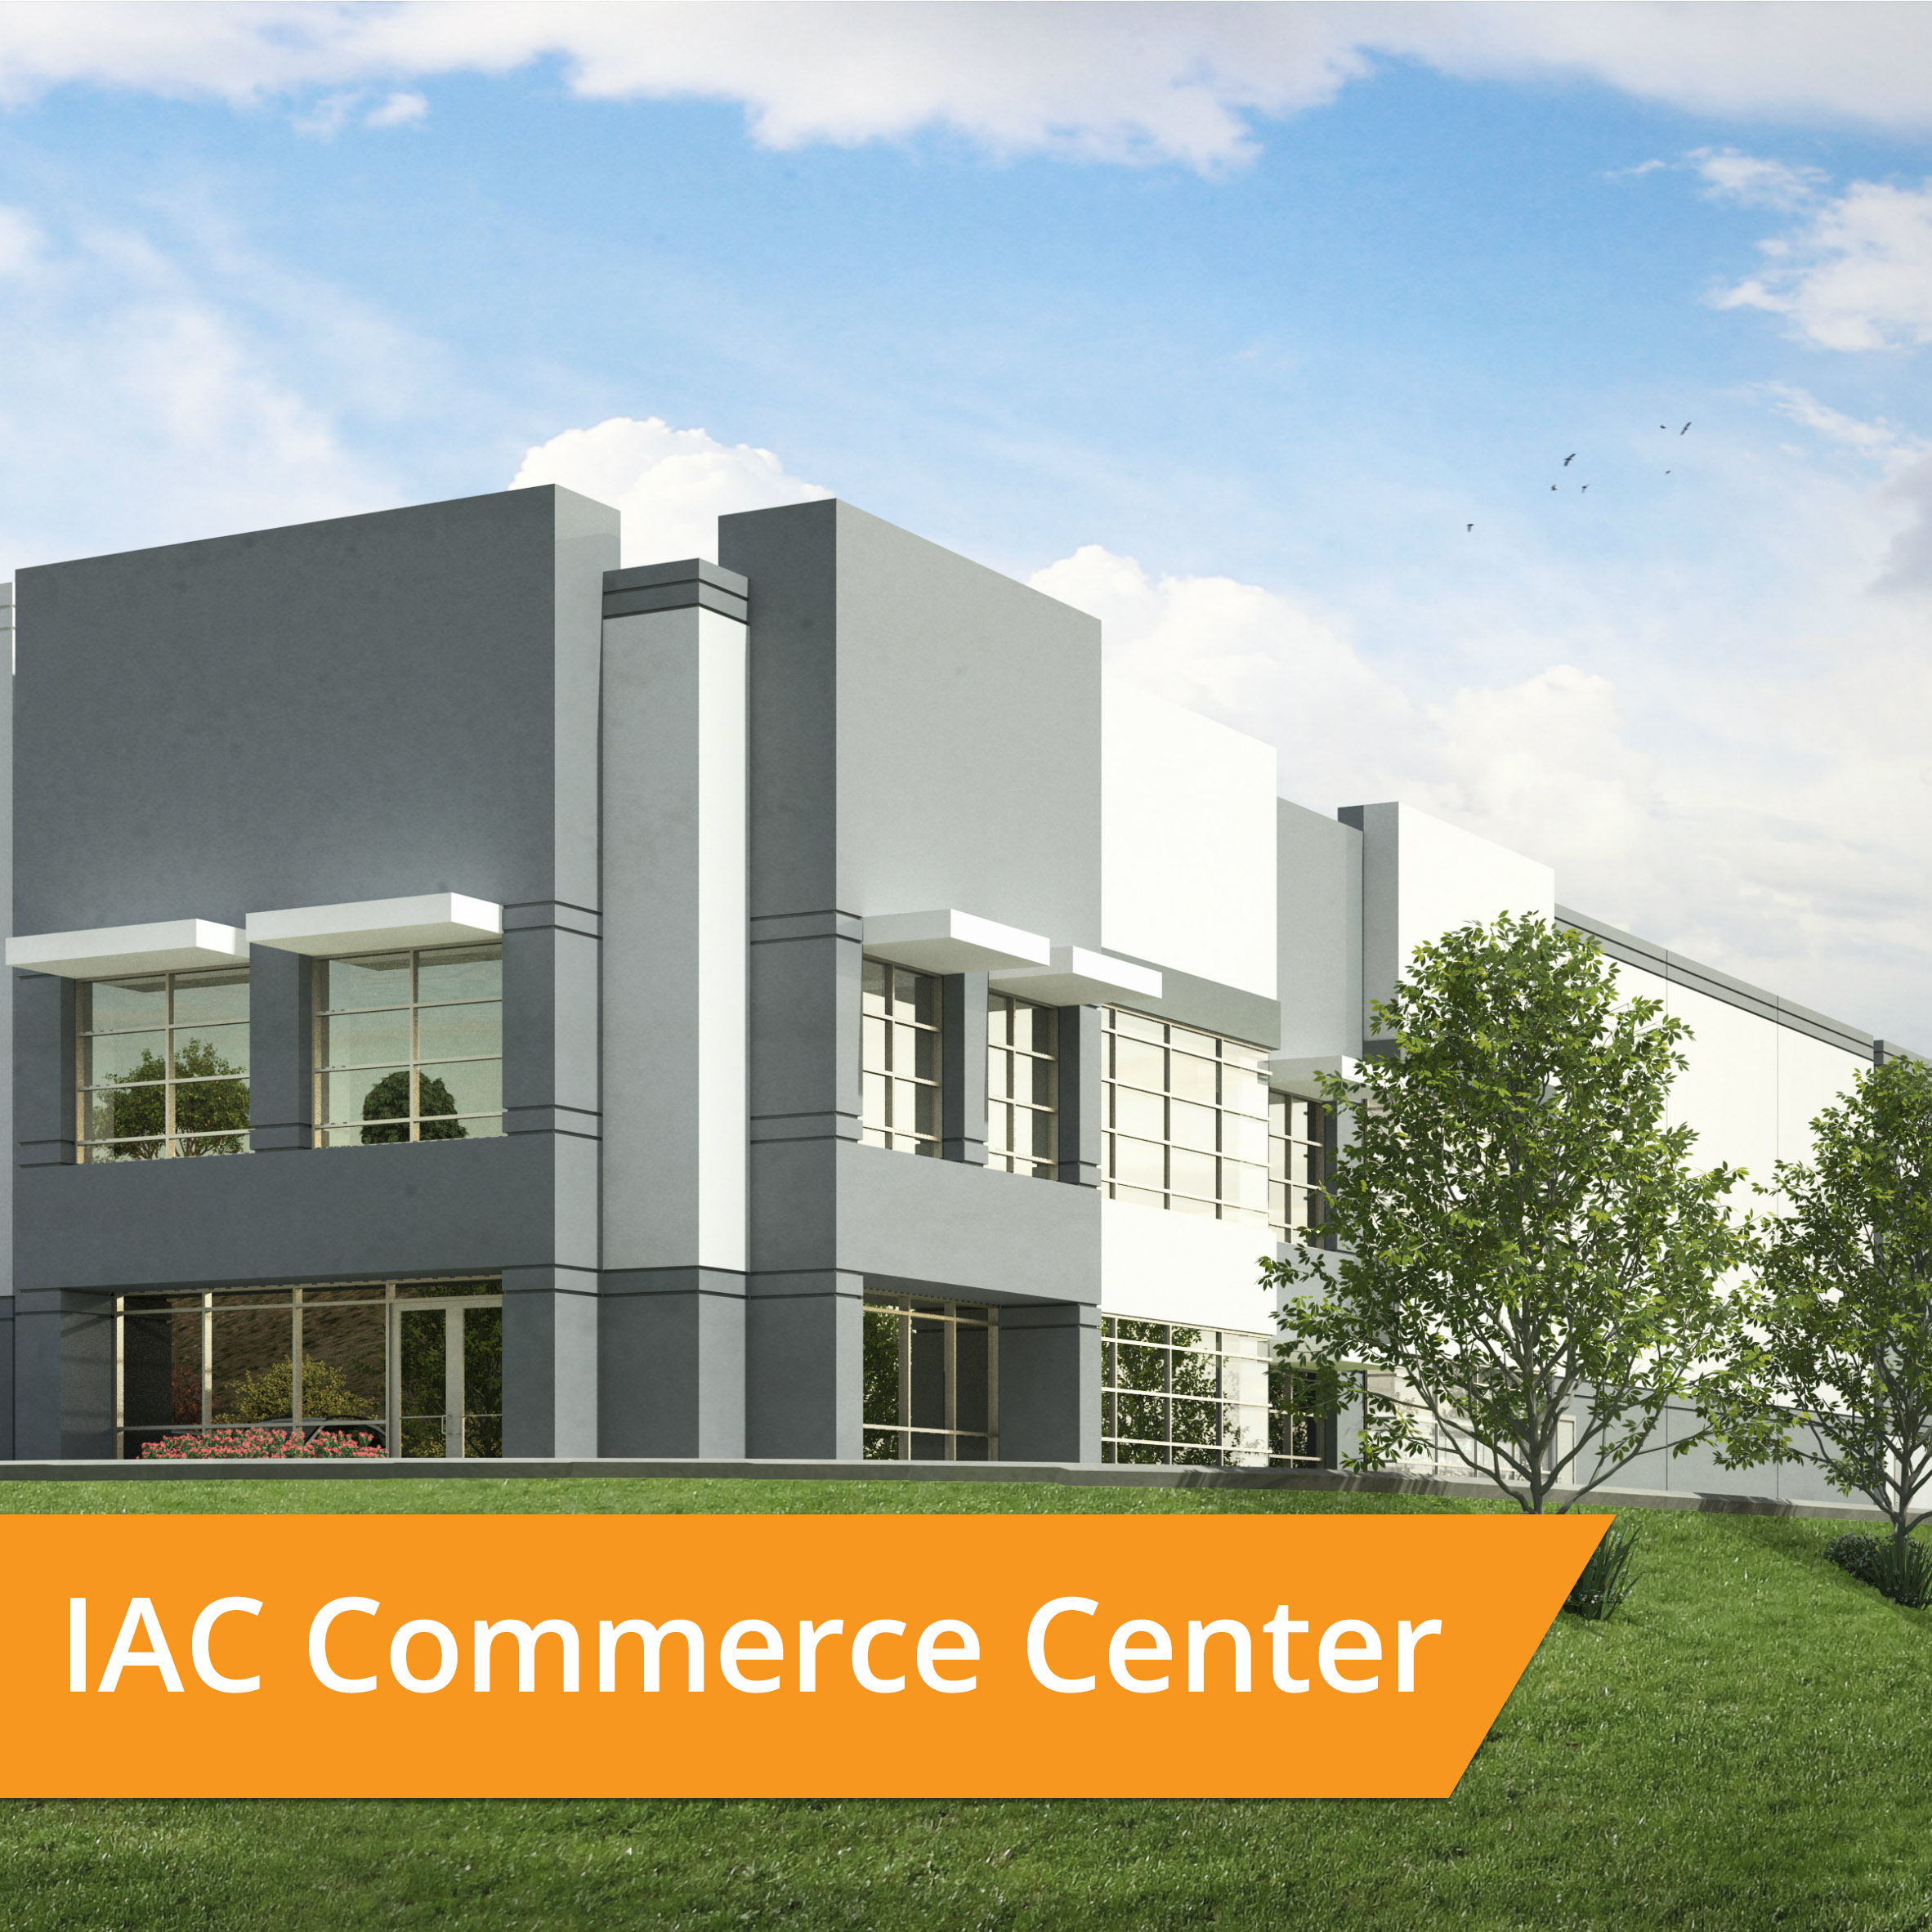 IAC Commerce Center in Santa Clarita